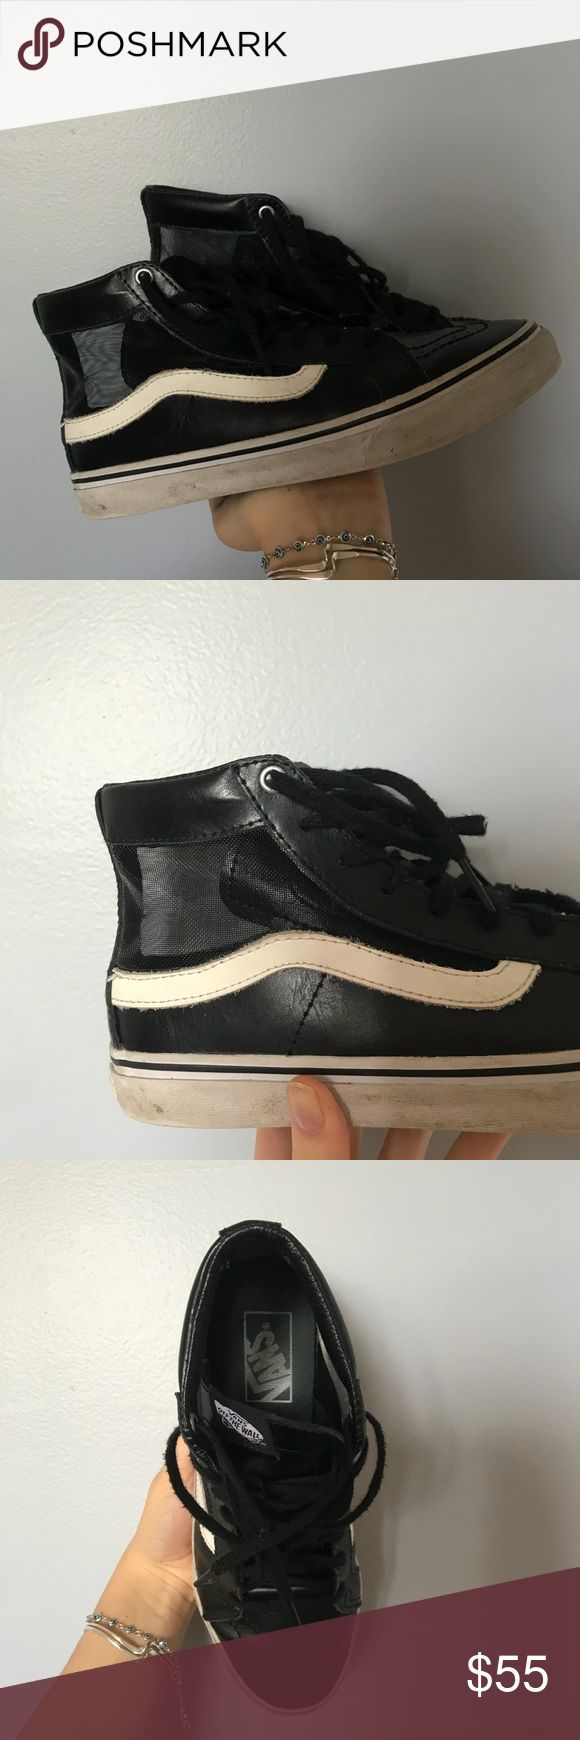 RARE Leather and Mesh Vans Shoes! Super Dope Black and White Vans High Top Sneakers! They Look Like the Usual Black High Tops But Made Out of Faux Leather and Mesh. True To Size. Talk to Me About Price! Vans Shoes Sneakers